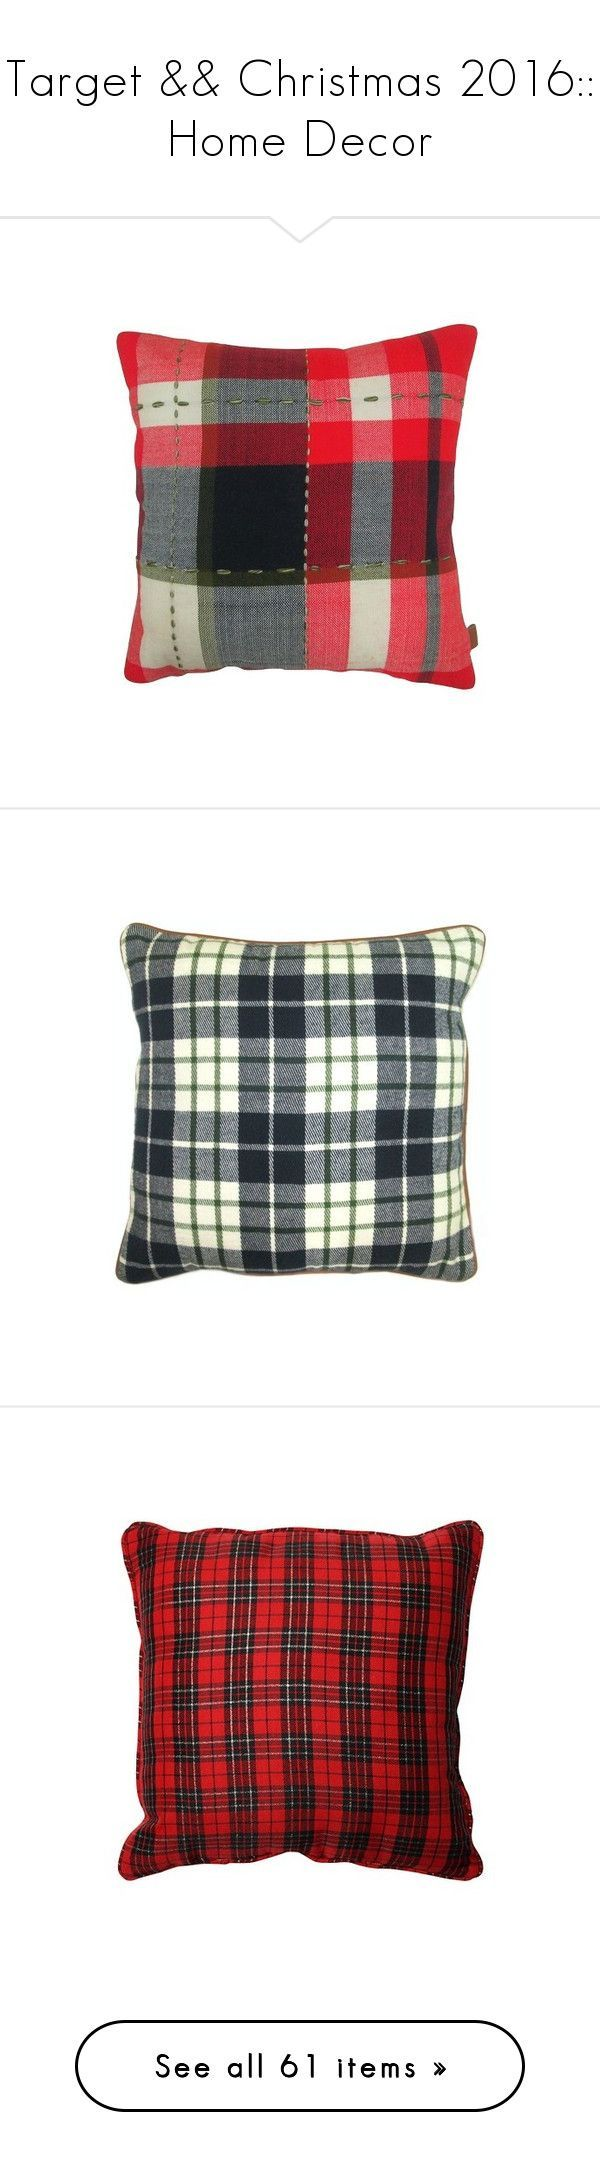 """""""Target && Christmas 2016:: Home Decor"""" by sbhackney ❤ liked on Polyvore featuring home, home decor, throw pillows, red toss pillows, red accent pillows, target home decor, tartan throw pillows, red throw pillows, target toss pillows and target accent pillows #TargetHomeDecor"""